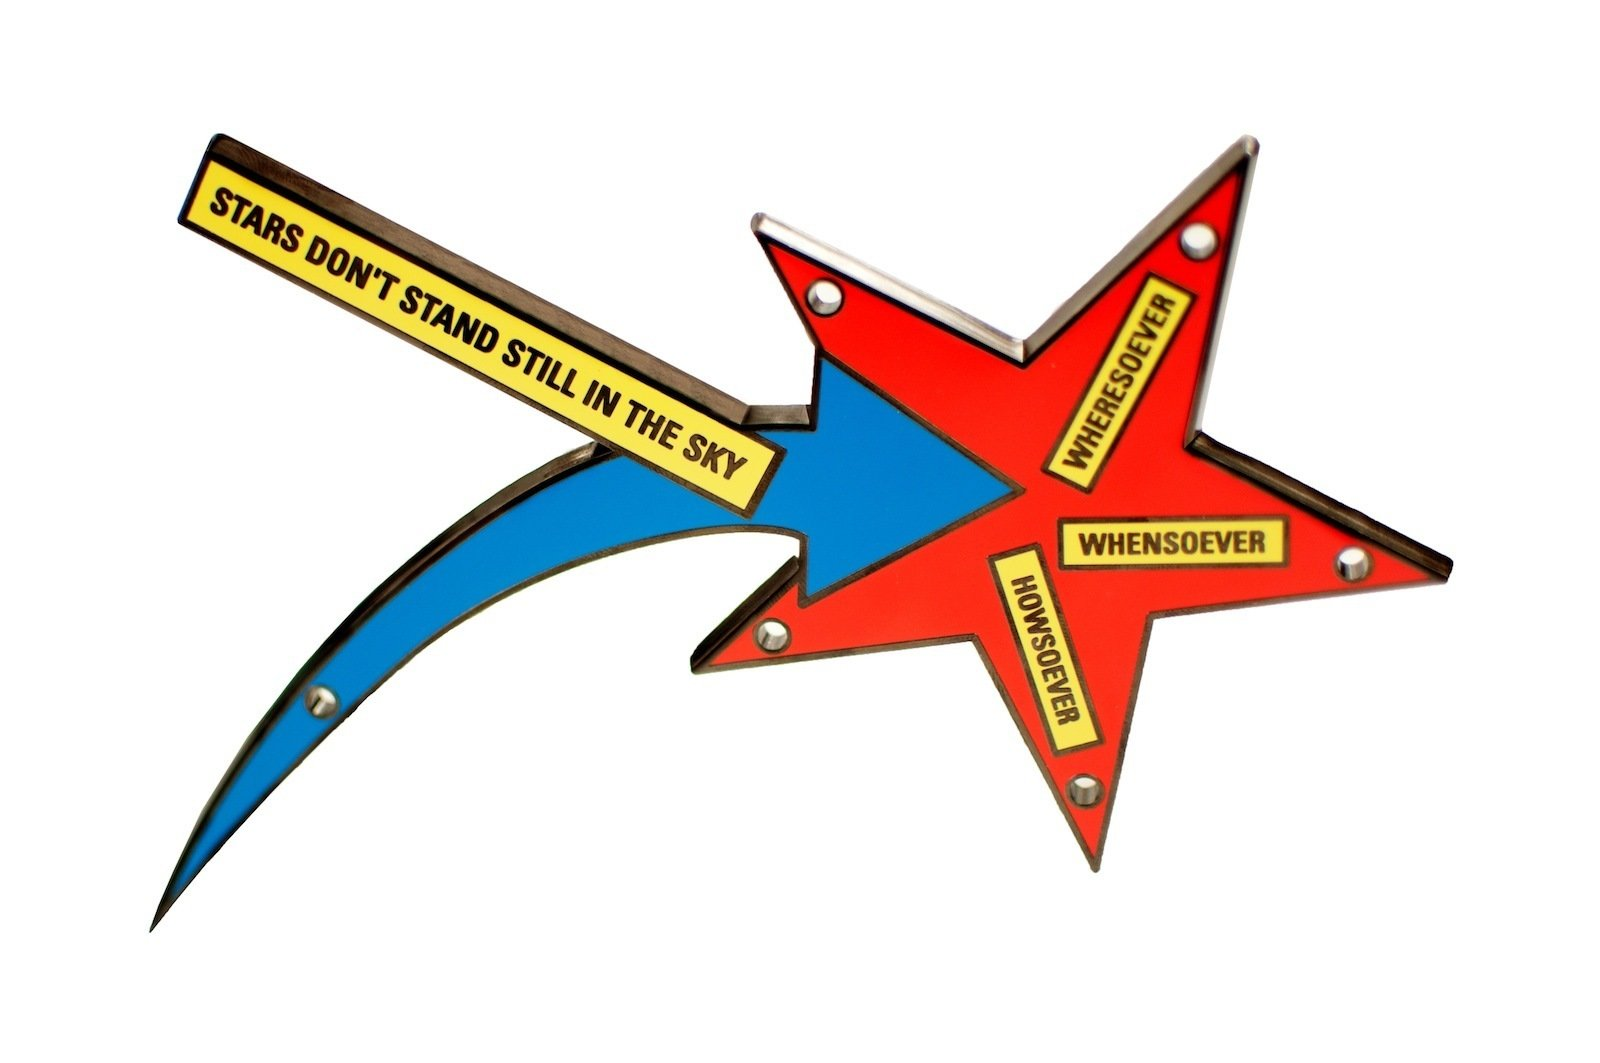 Stars Don't Stand Still in the Sky, by Lawrence Weiner  Photo 6 of 6 in Q&A with Artspace Founder